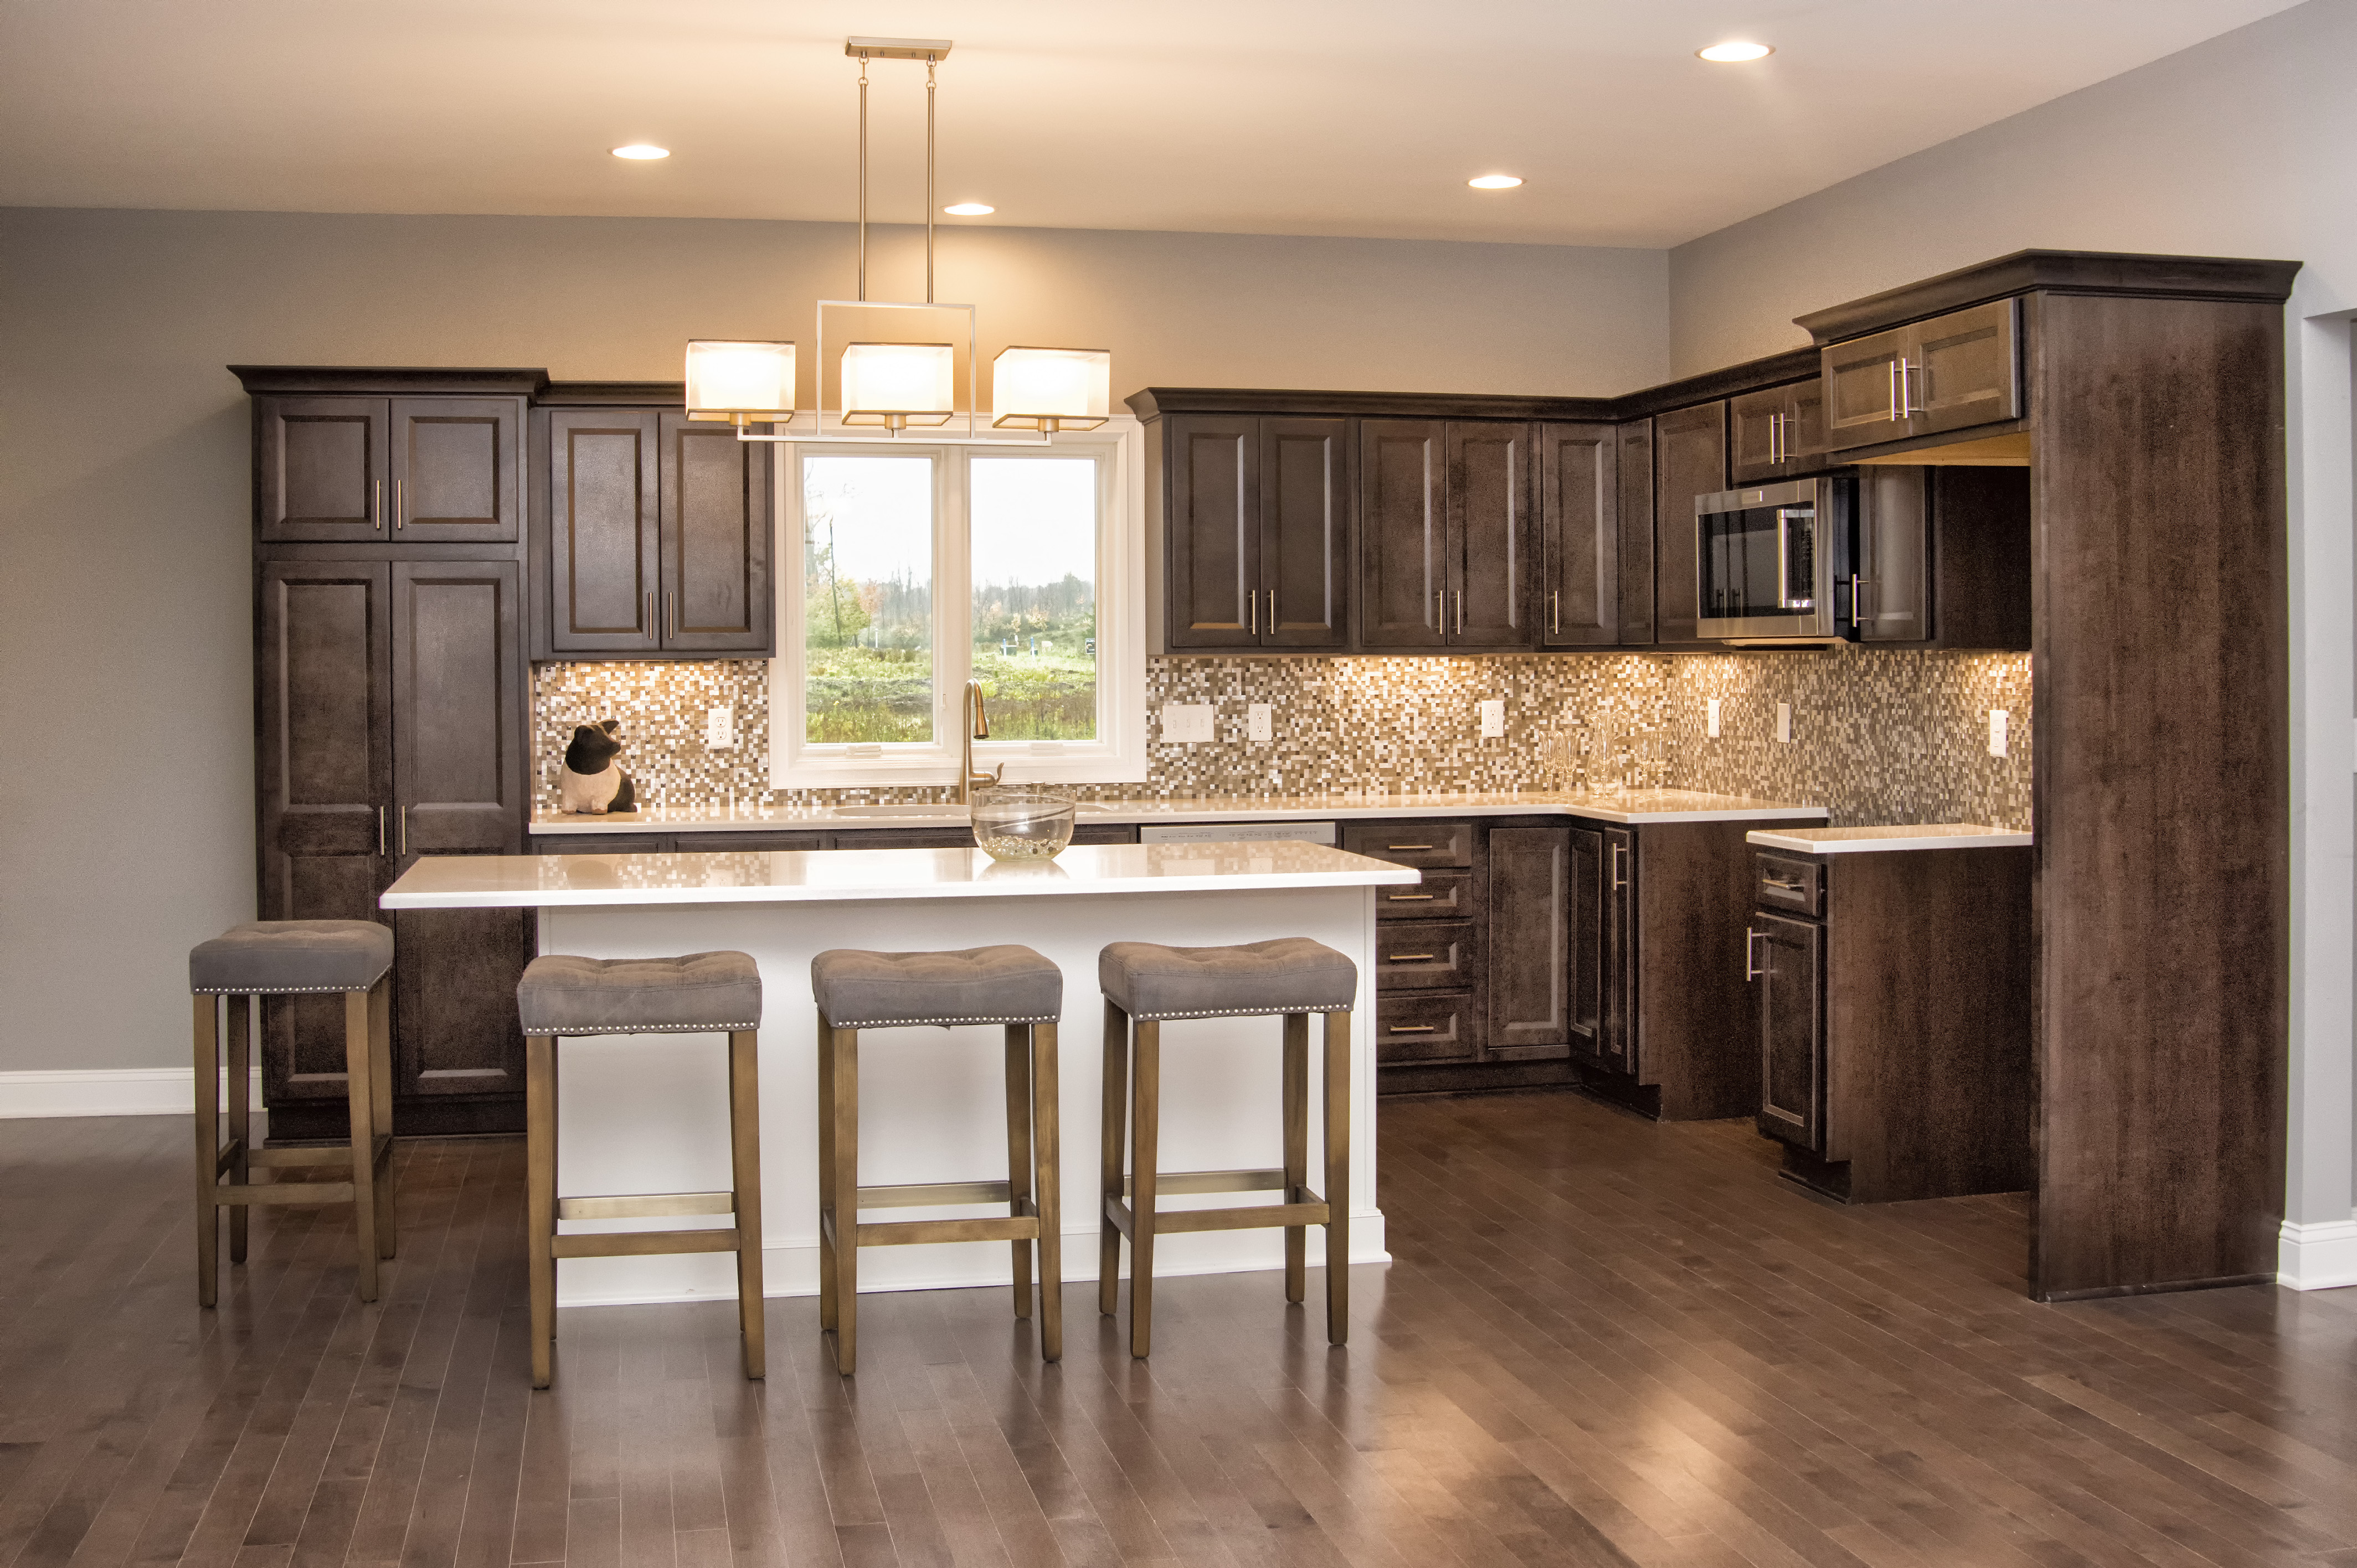 Kitchen Snack Bar Featured Home Walnut Grove Apartment Homes Begins Leasing